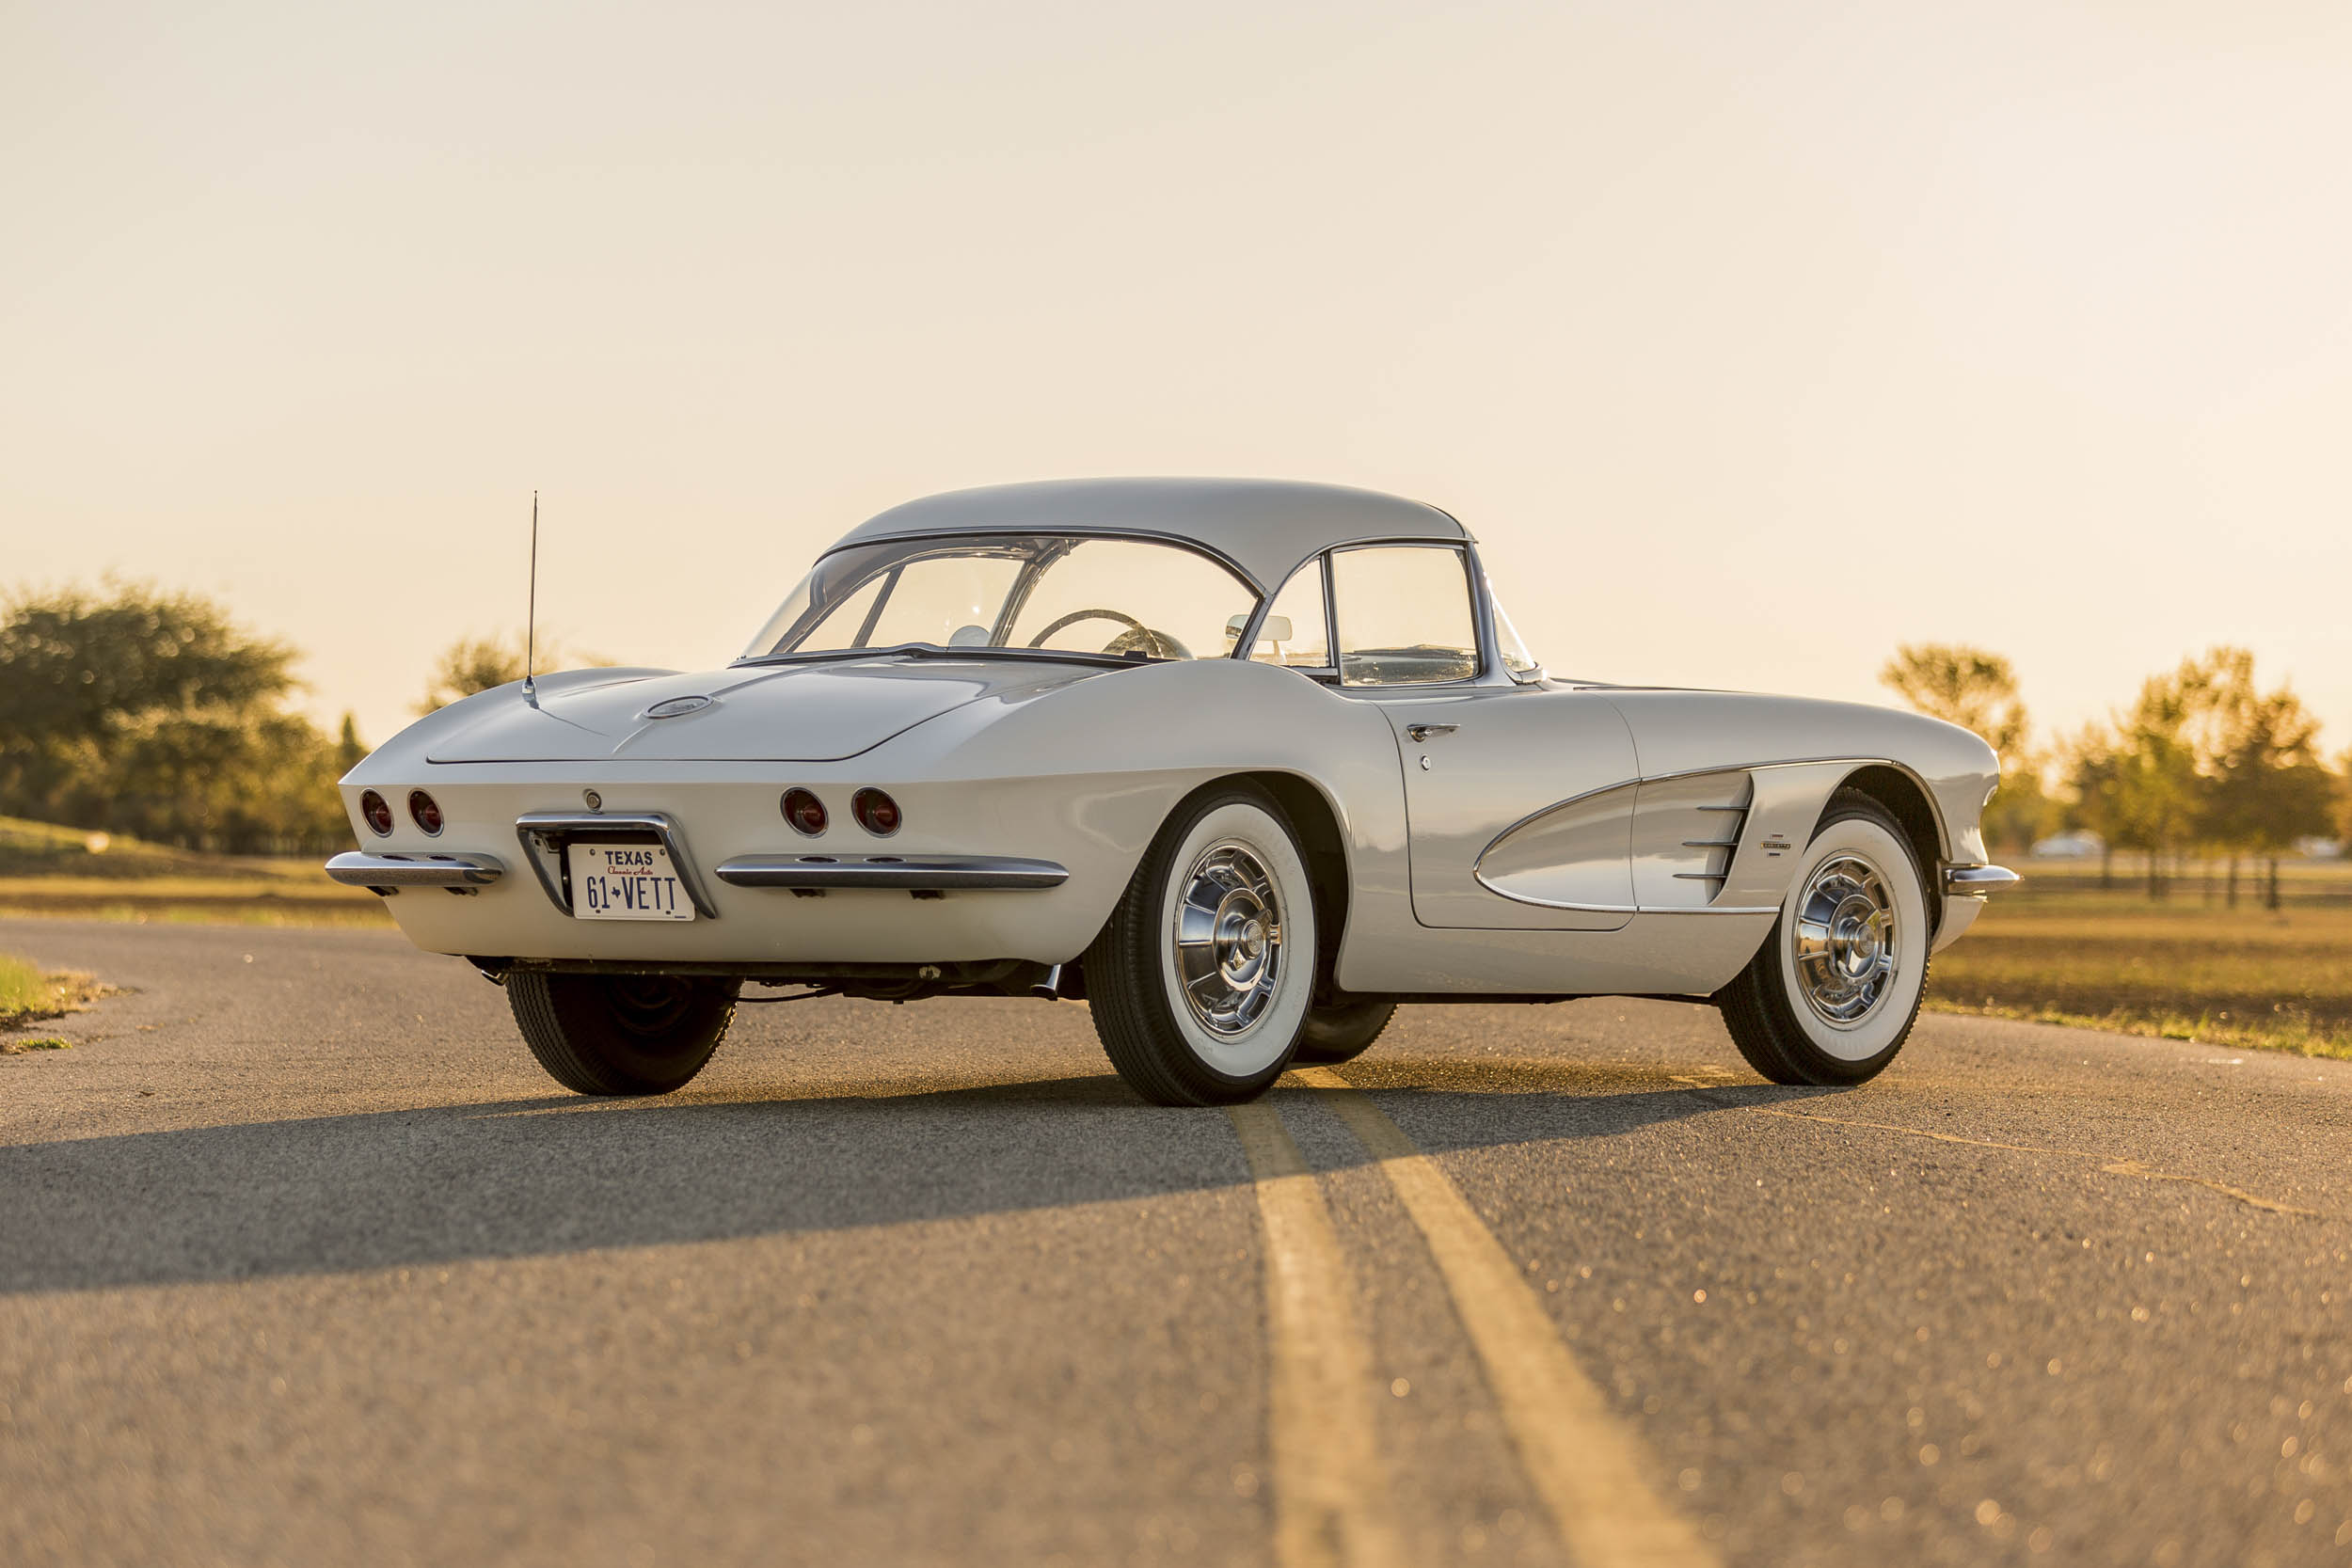 1961 Chevrolet Corvette rear 3/4